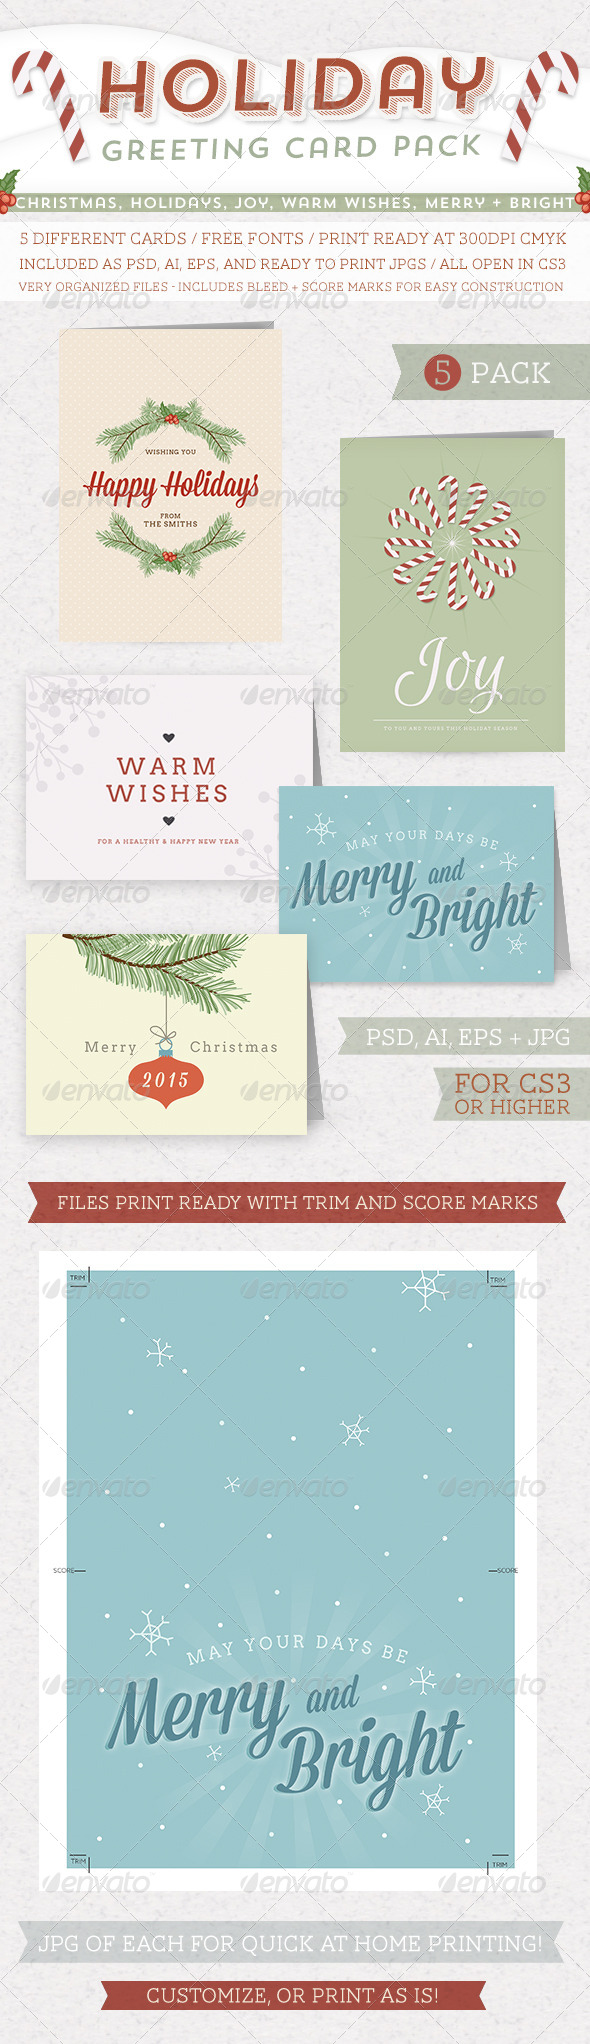 GraphicRiver Holiday Greeting Card Pack 5792445